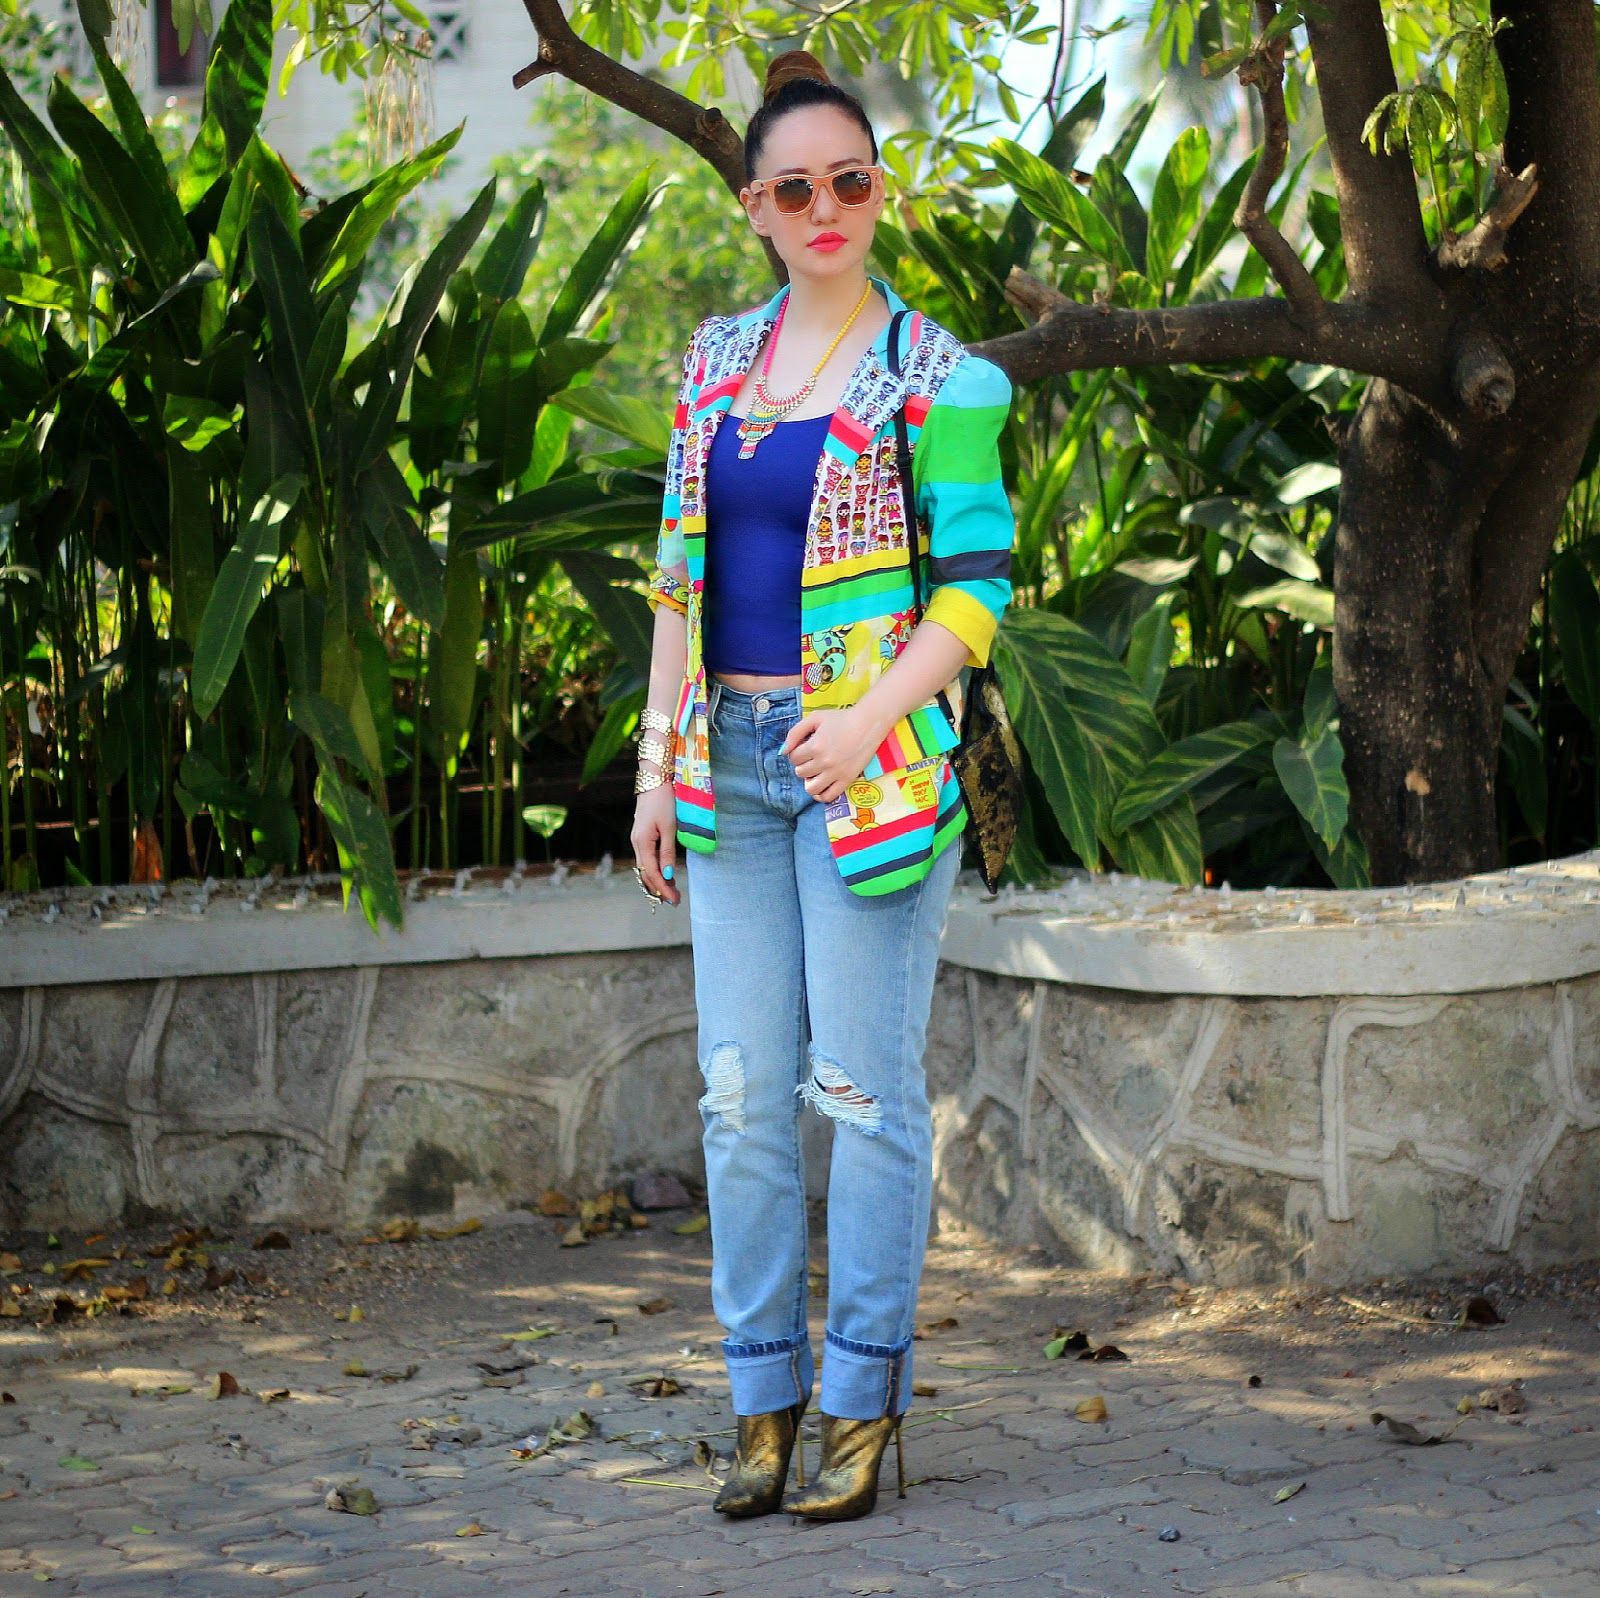 QuirkBox Toy Factory Boyfriend Jacket with Levis 501 CT Jeans